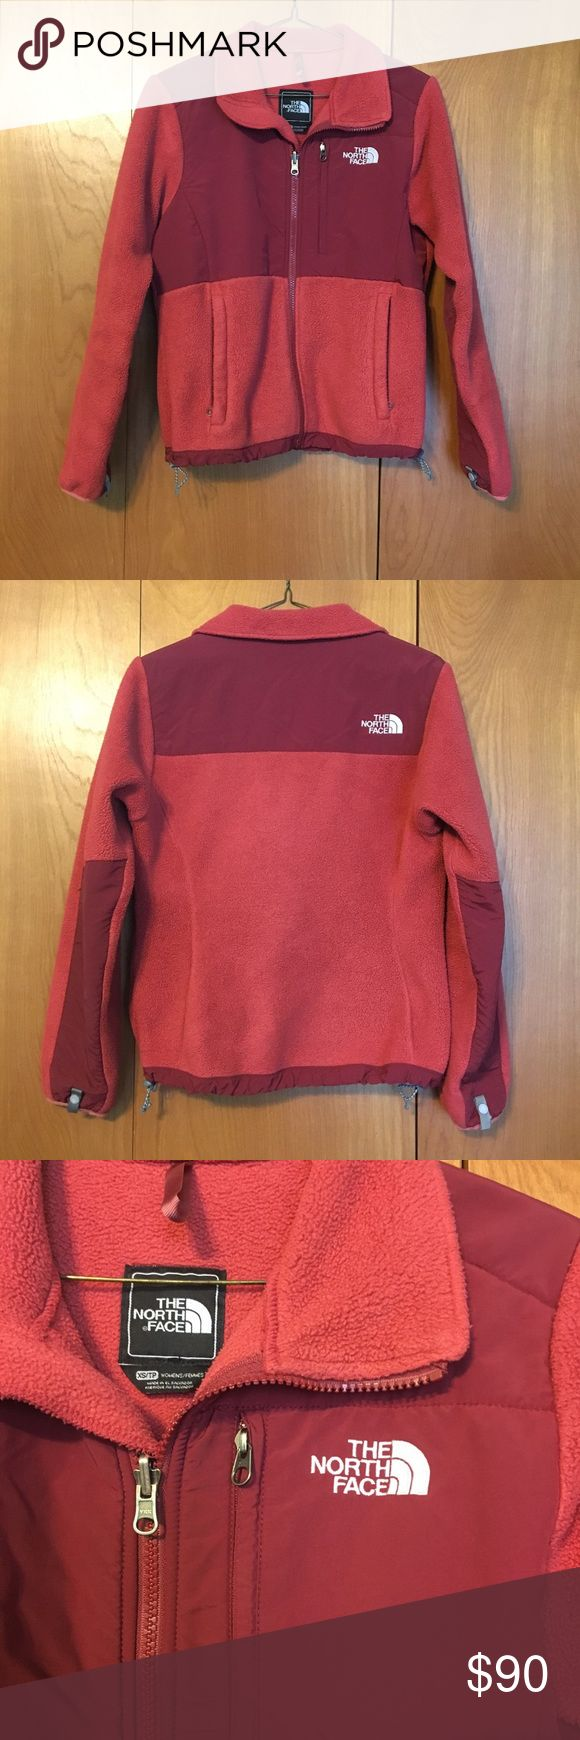 North Face Jacket! 😍 Like new North Face fleece jacket! 😍 Beautiful Reddish/Salmon color. ❤️ Very good condition! The North Face Jackets & Coats